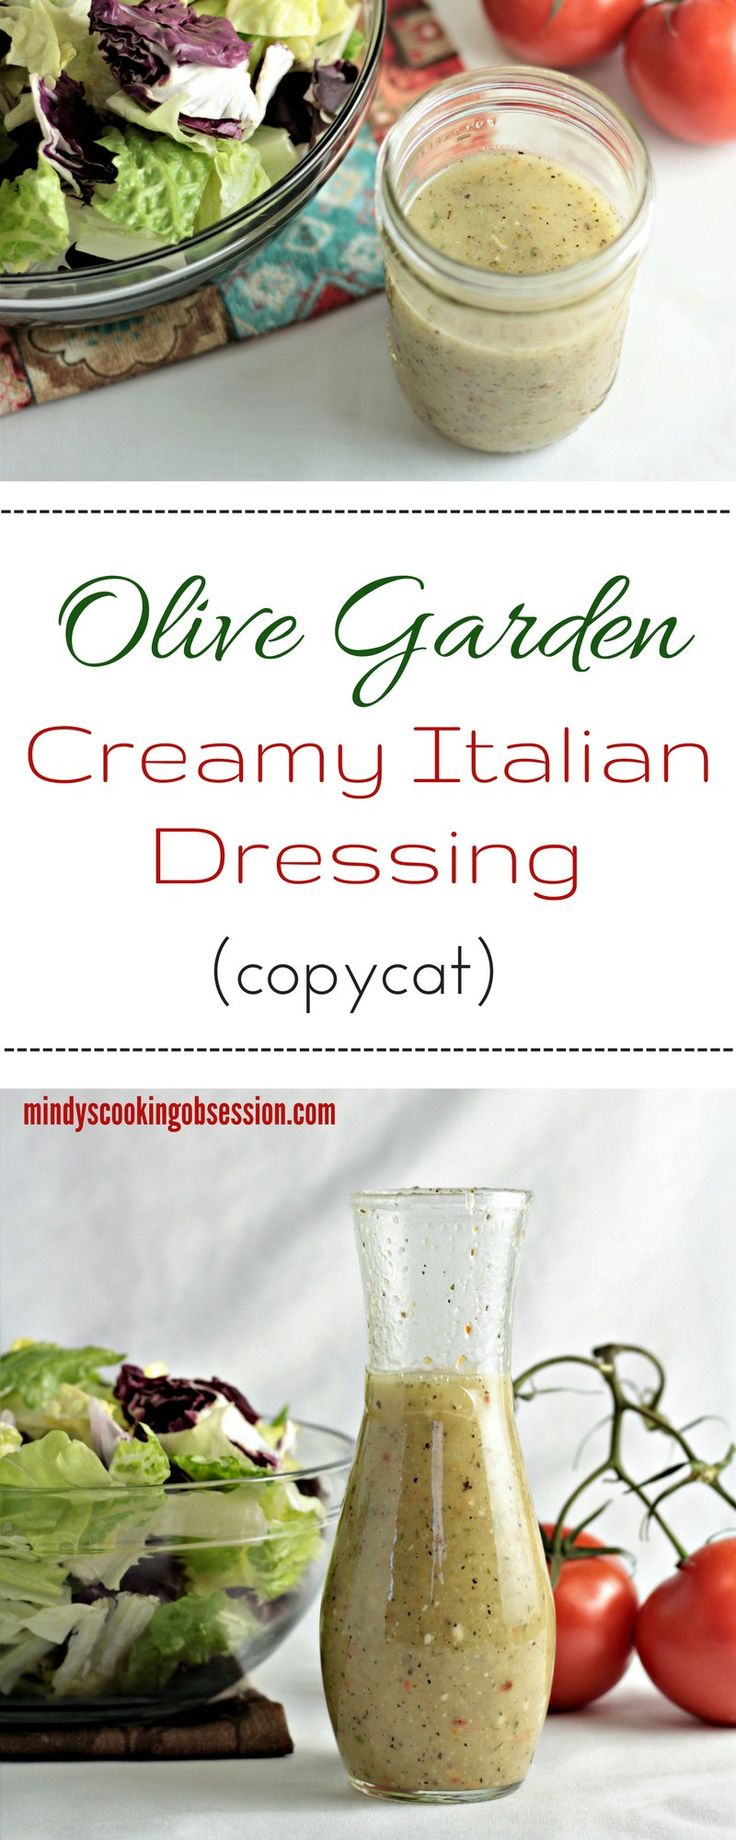 25 Best Ideas About Olive Garden Italian Dressing On Pinterest Olive Garden Salad Italian